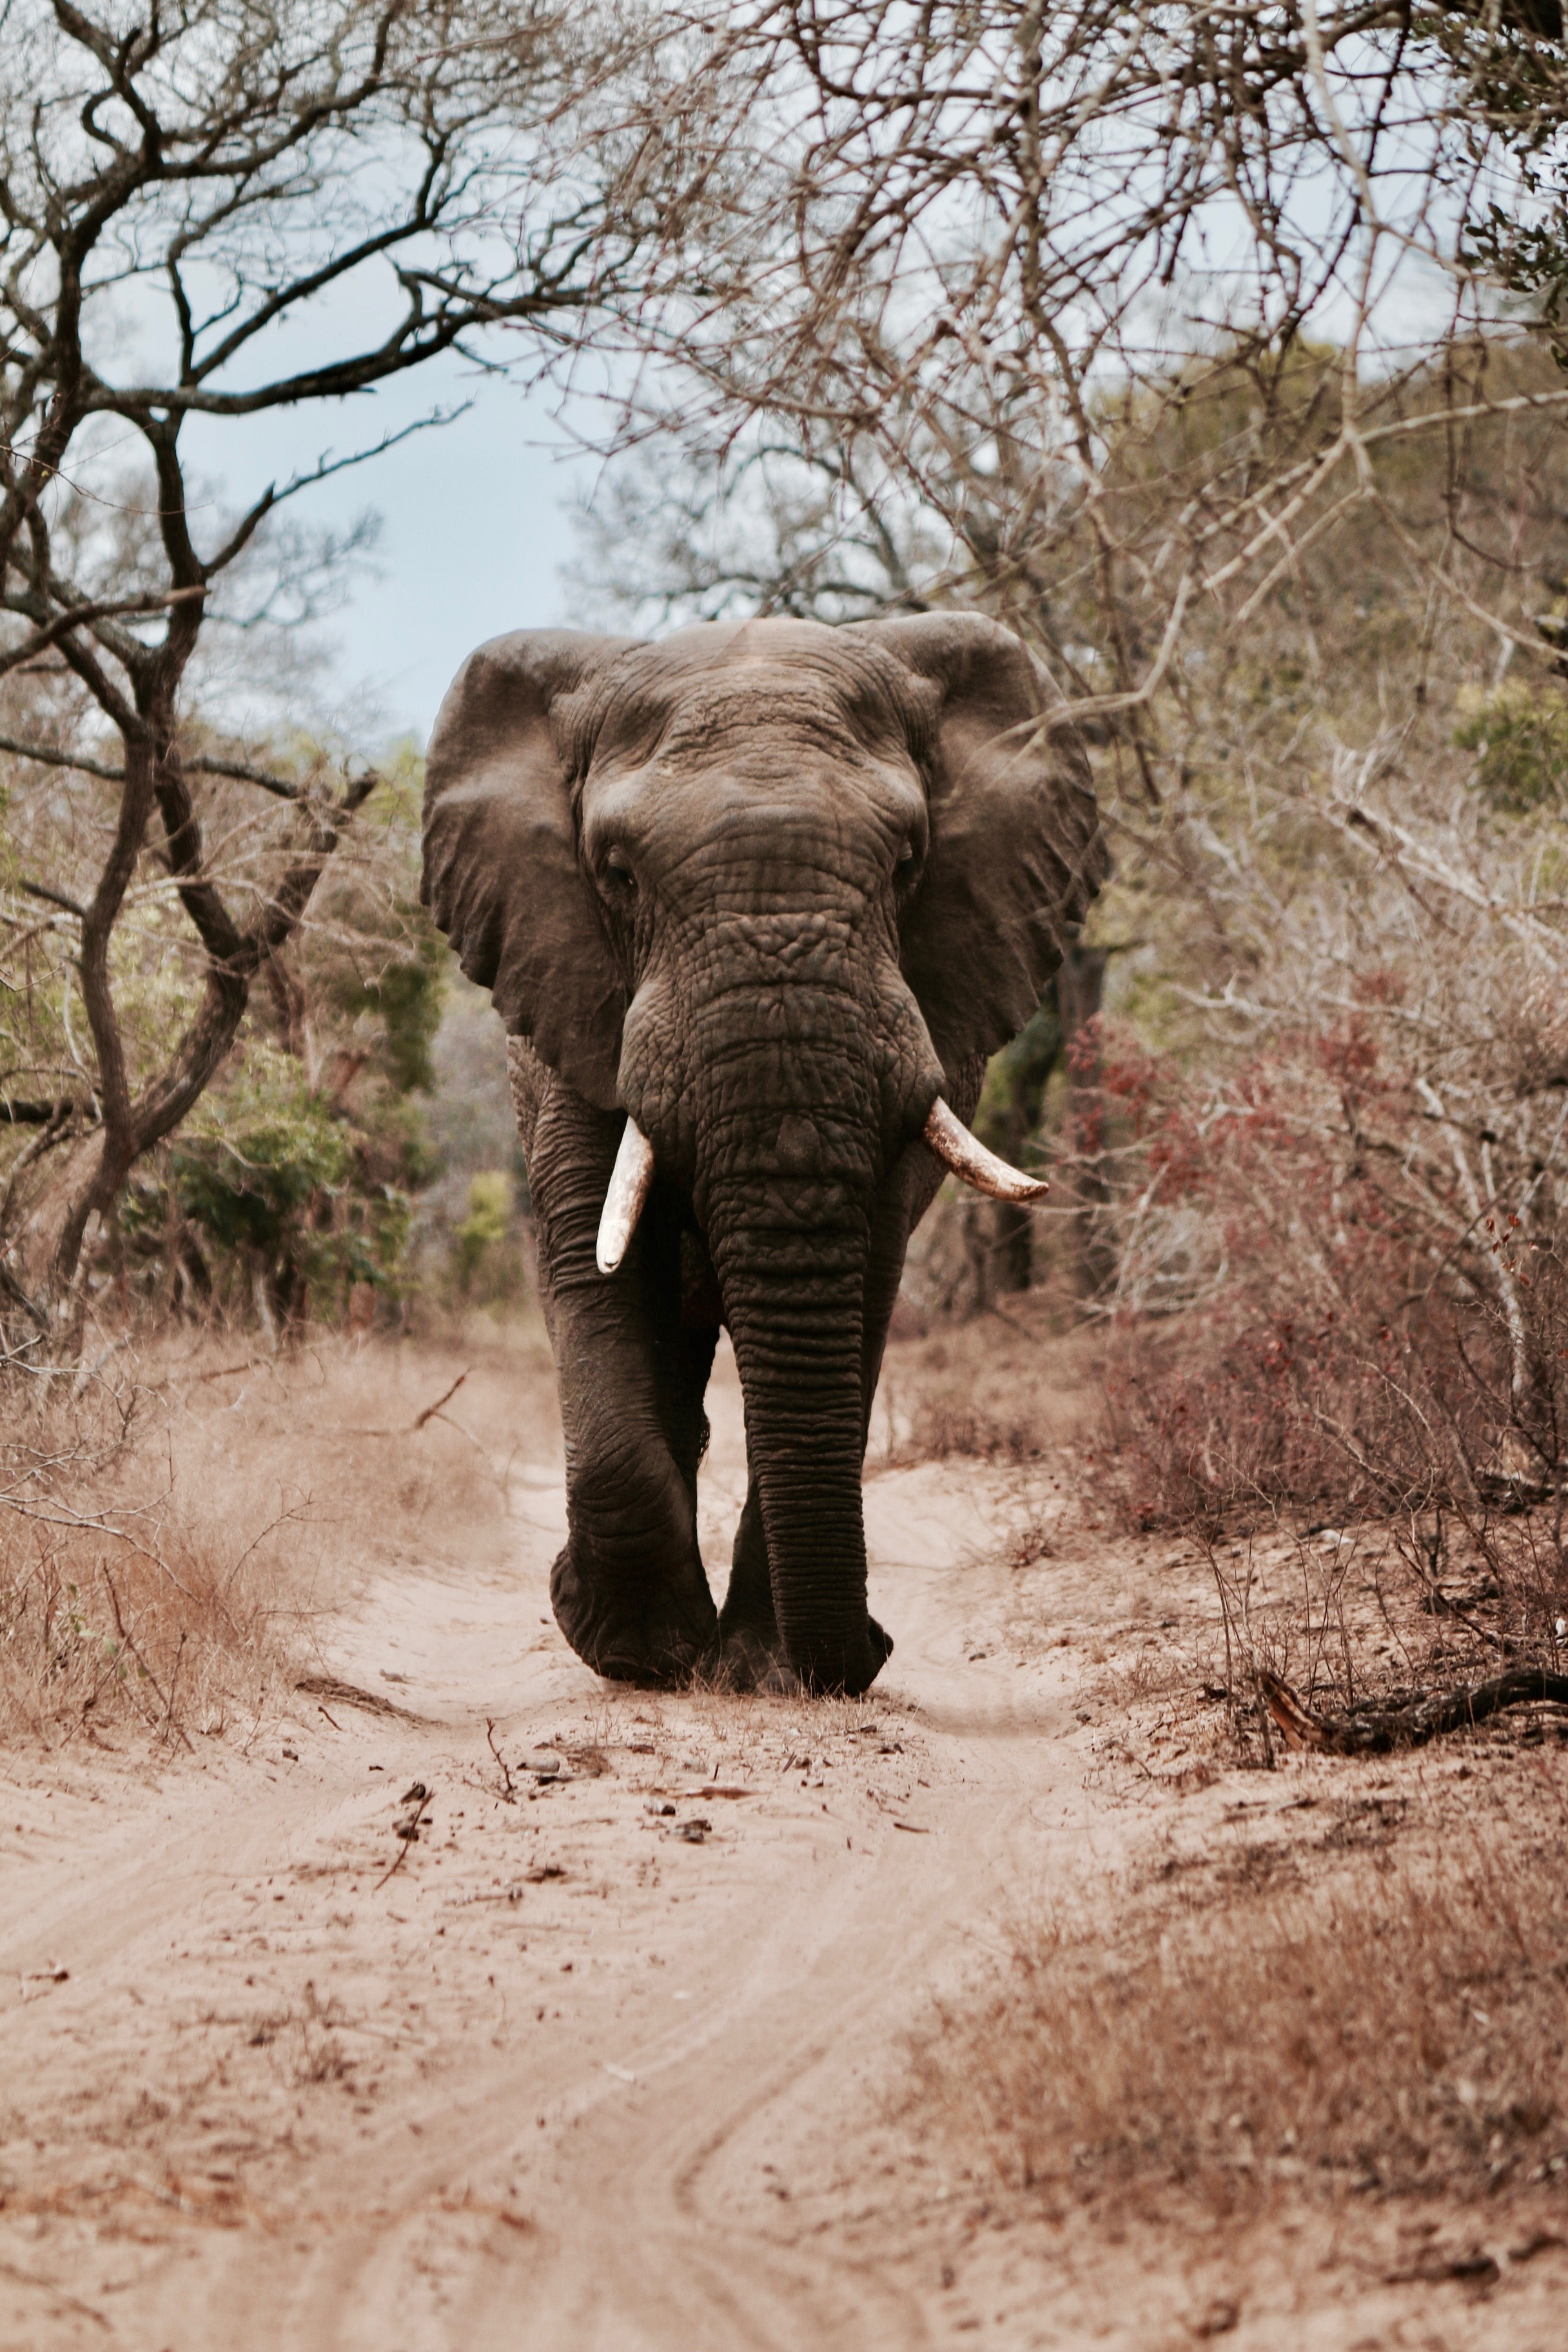 elephant pictures [hd] download free images \u0026 stock photos on unsplashblack elephant walking on brown sand